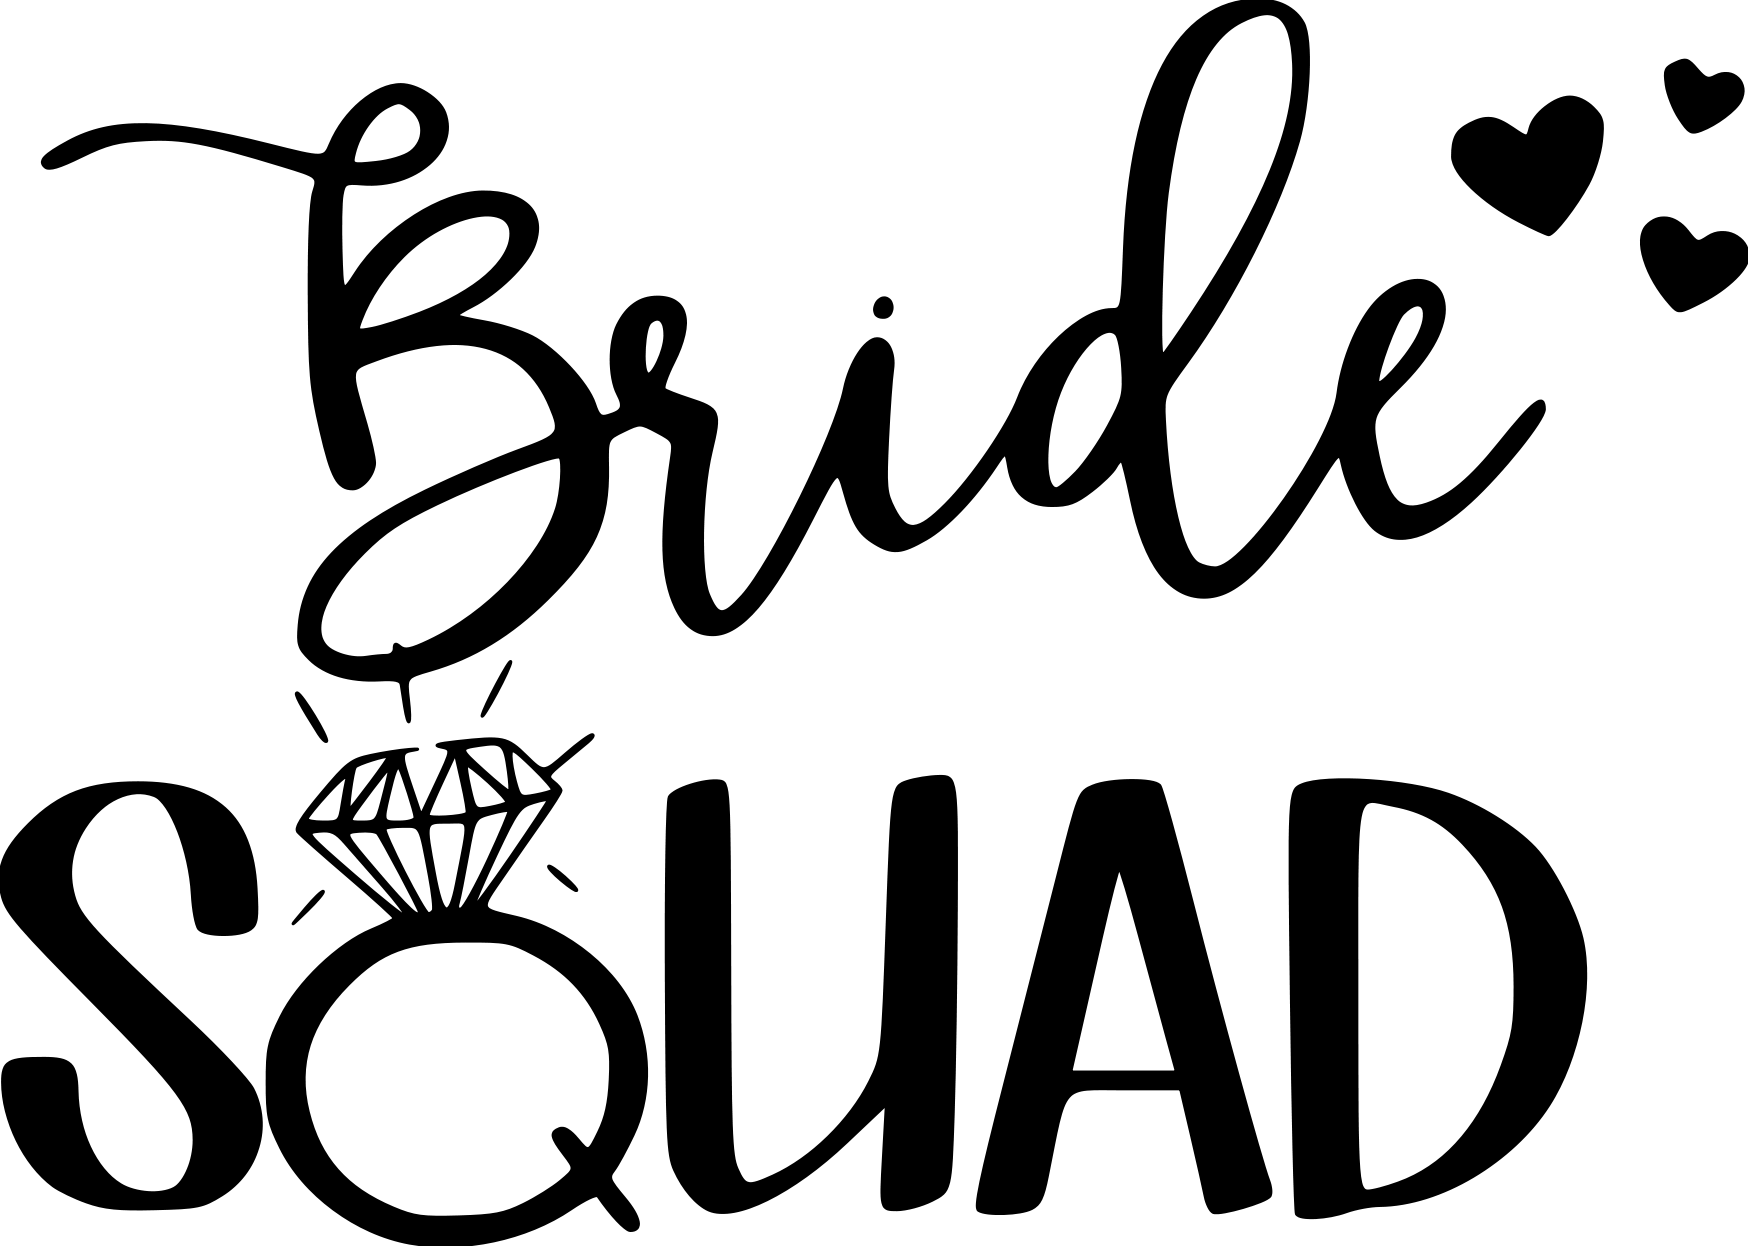 Groom Clipart Bride Squad Groom Bride Squad Transparent